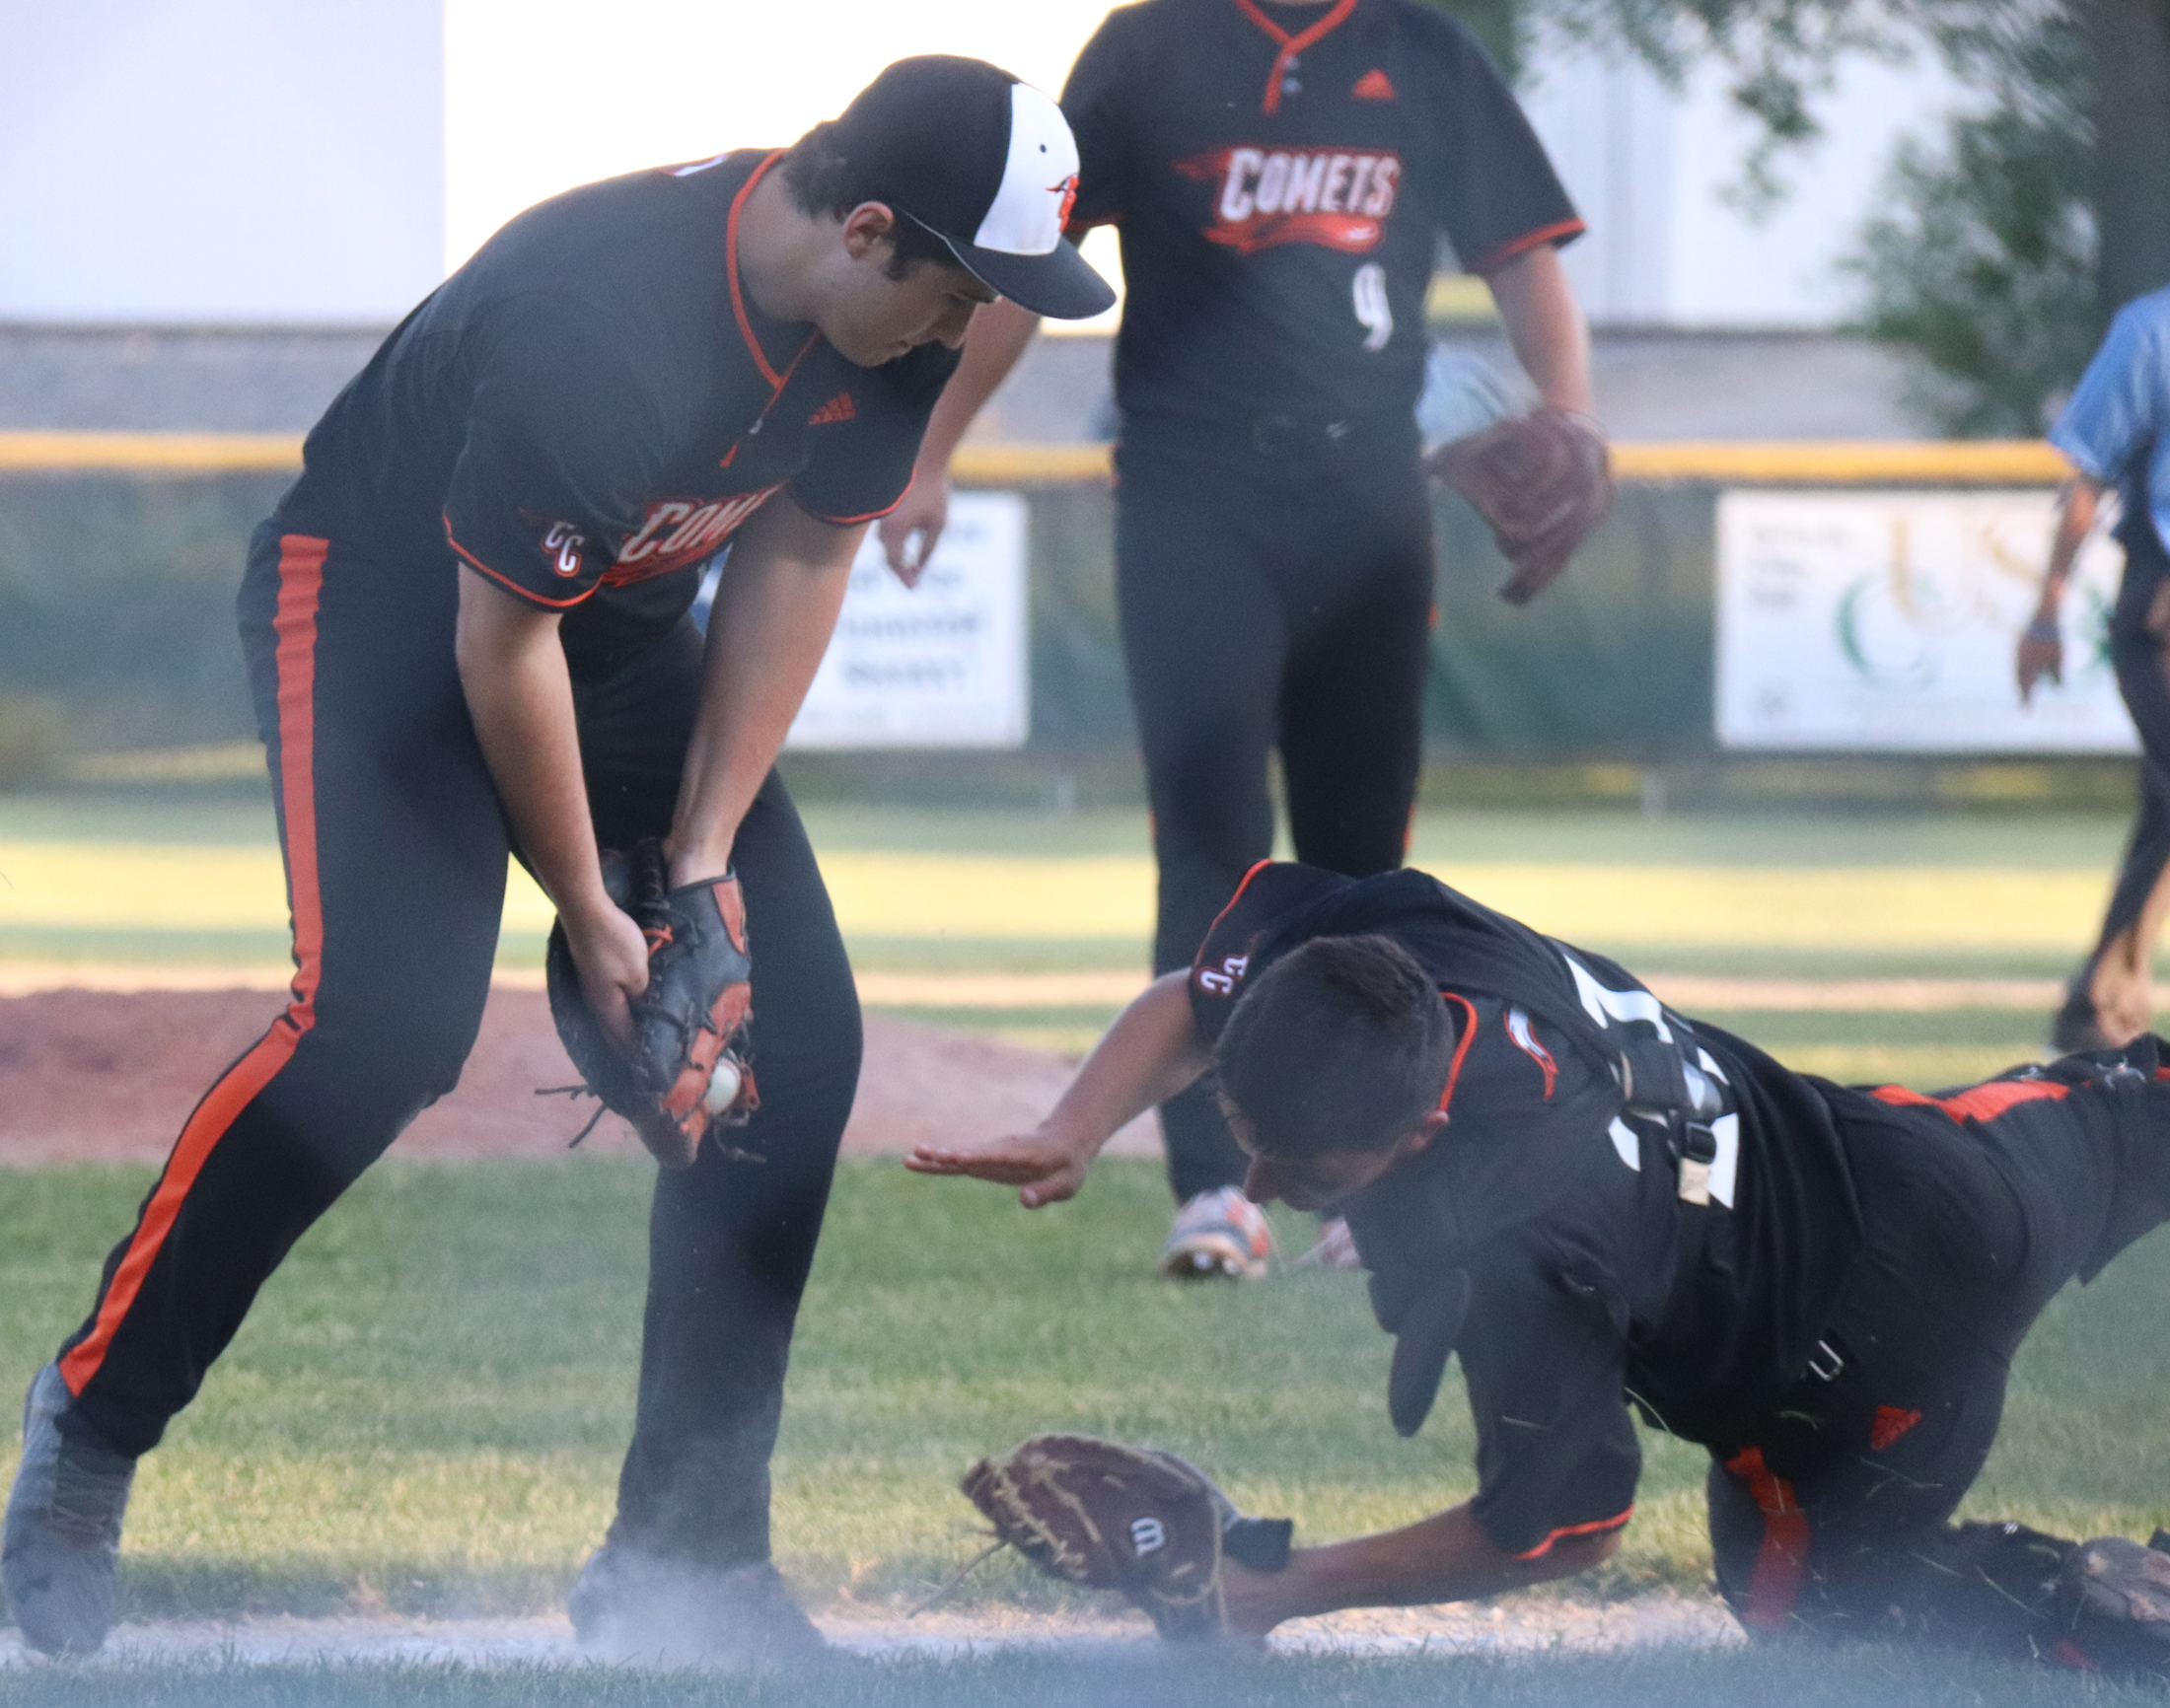 Chickasaws jump out early to defeat Comets, 9-1